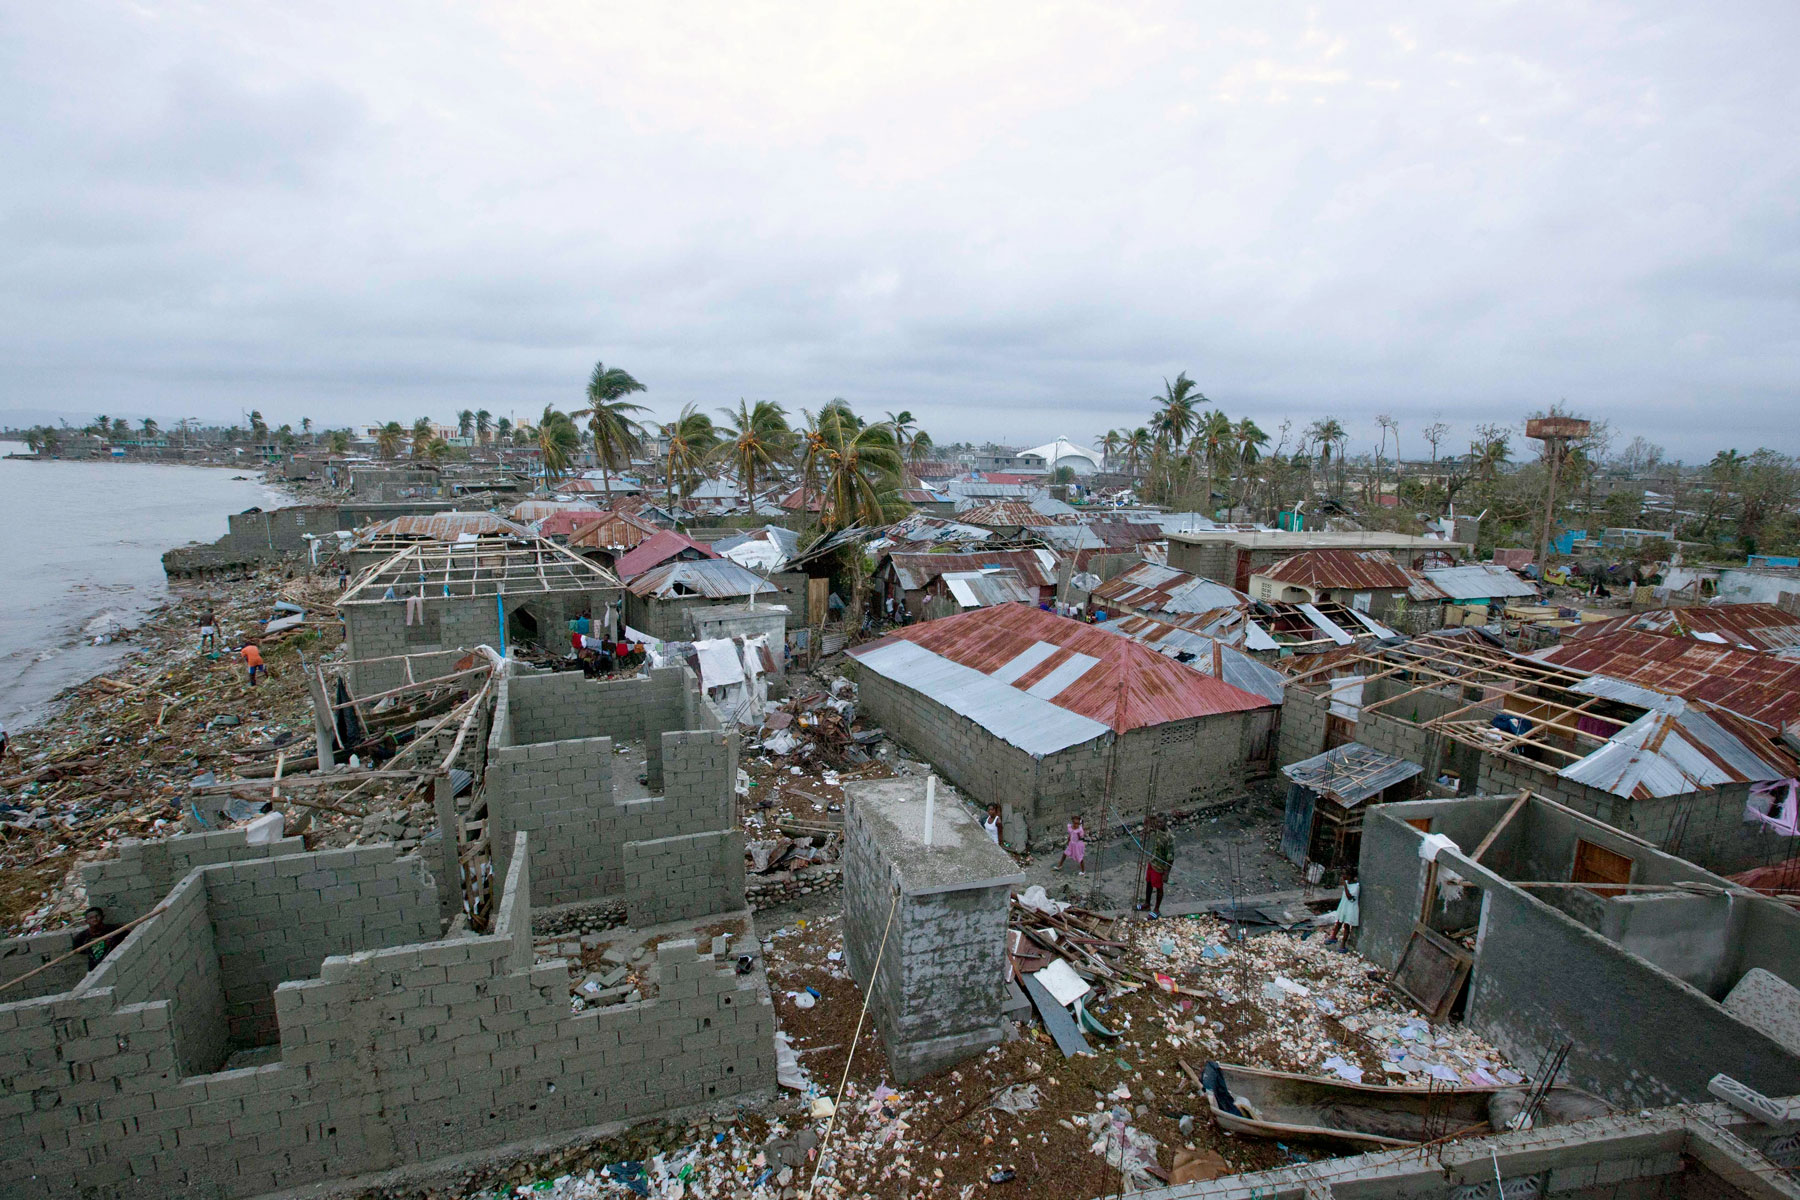 A view of some houses after the Hurricane Matthew, Les Cayes, Haiti.